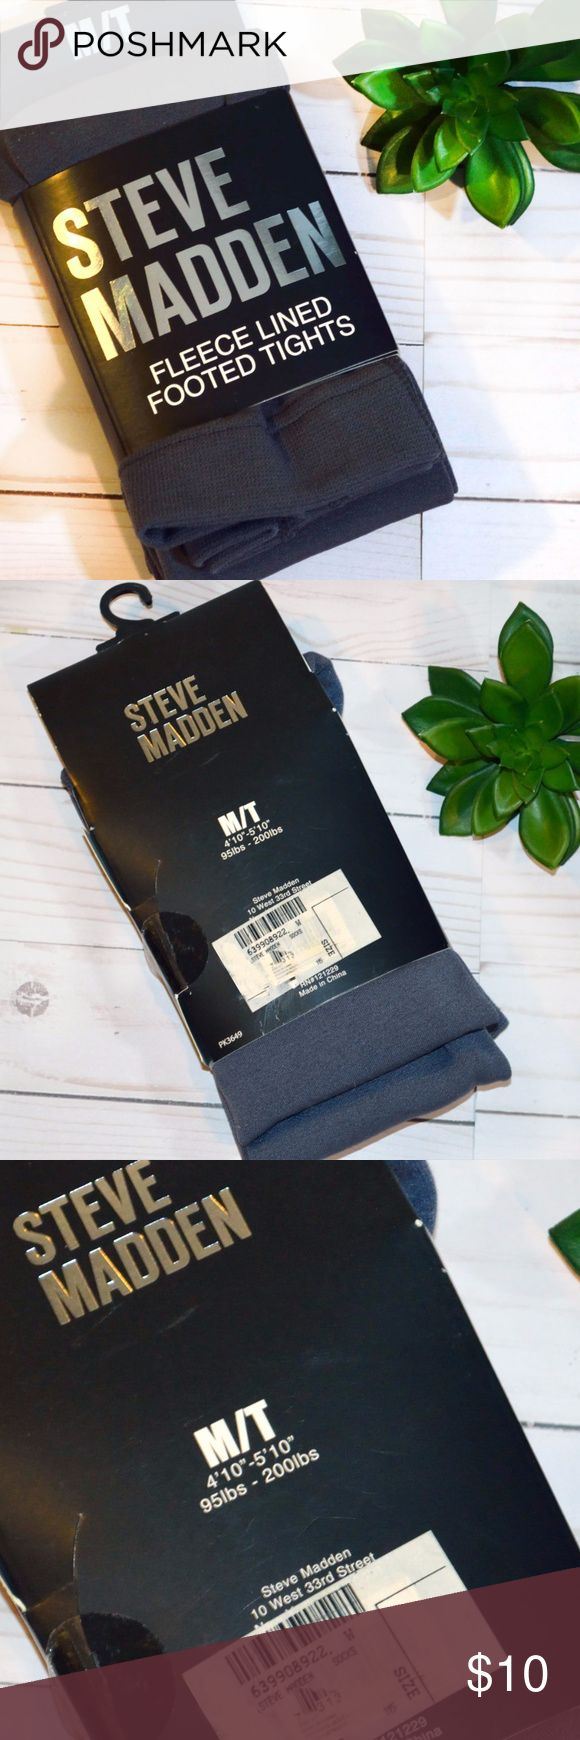 "Steve Madden Gray Fleece Lined Footed Tights M/T New Fleece Lined Footed Tights  Size: M/T Height:  4""10"" - 5' 10"" Weight:  95lbs - 200 lbs Steeve Madden Accessories Hosiery & Socks"